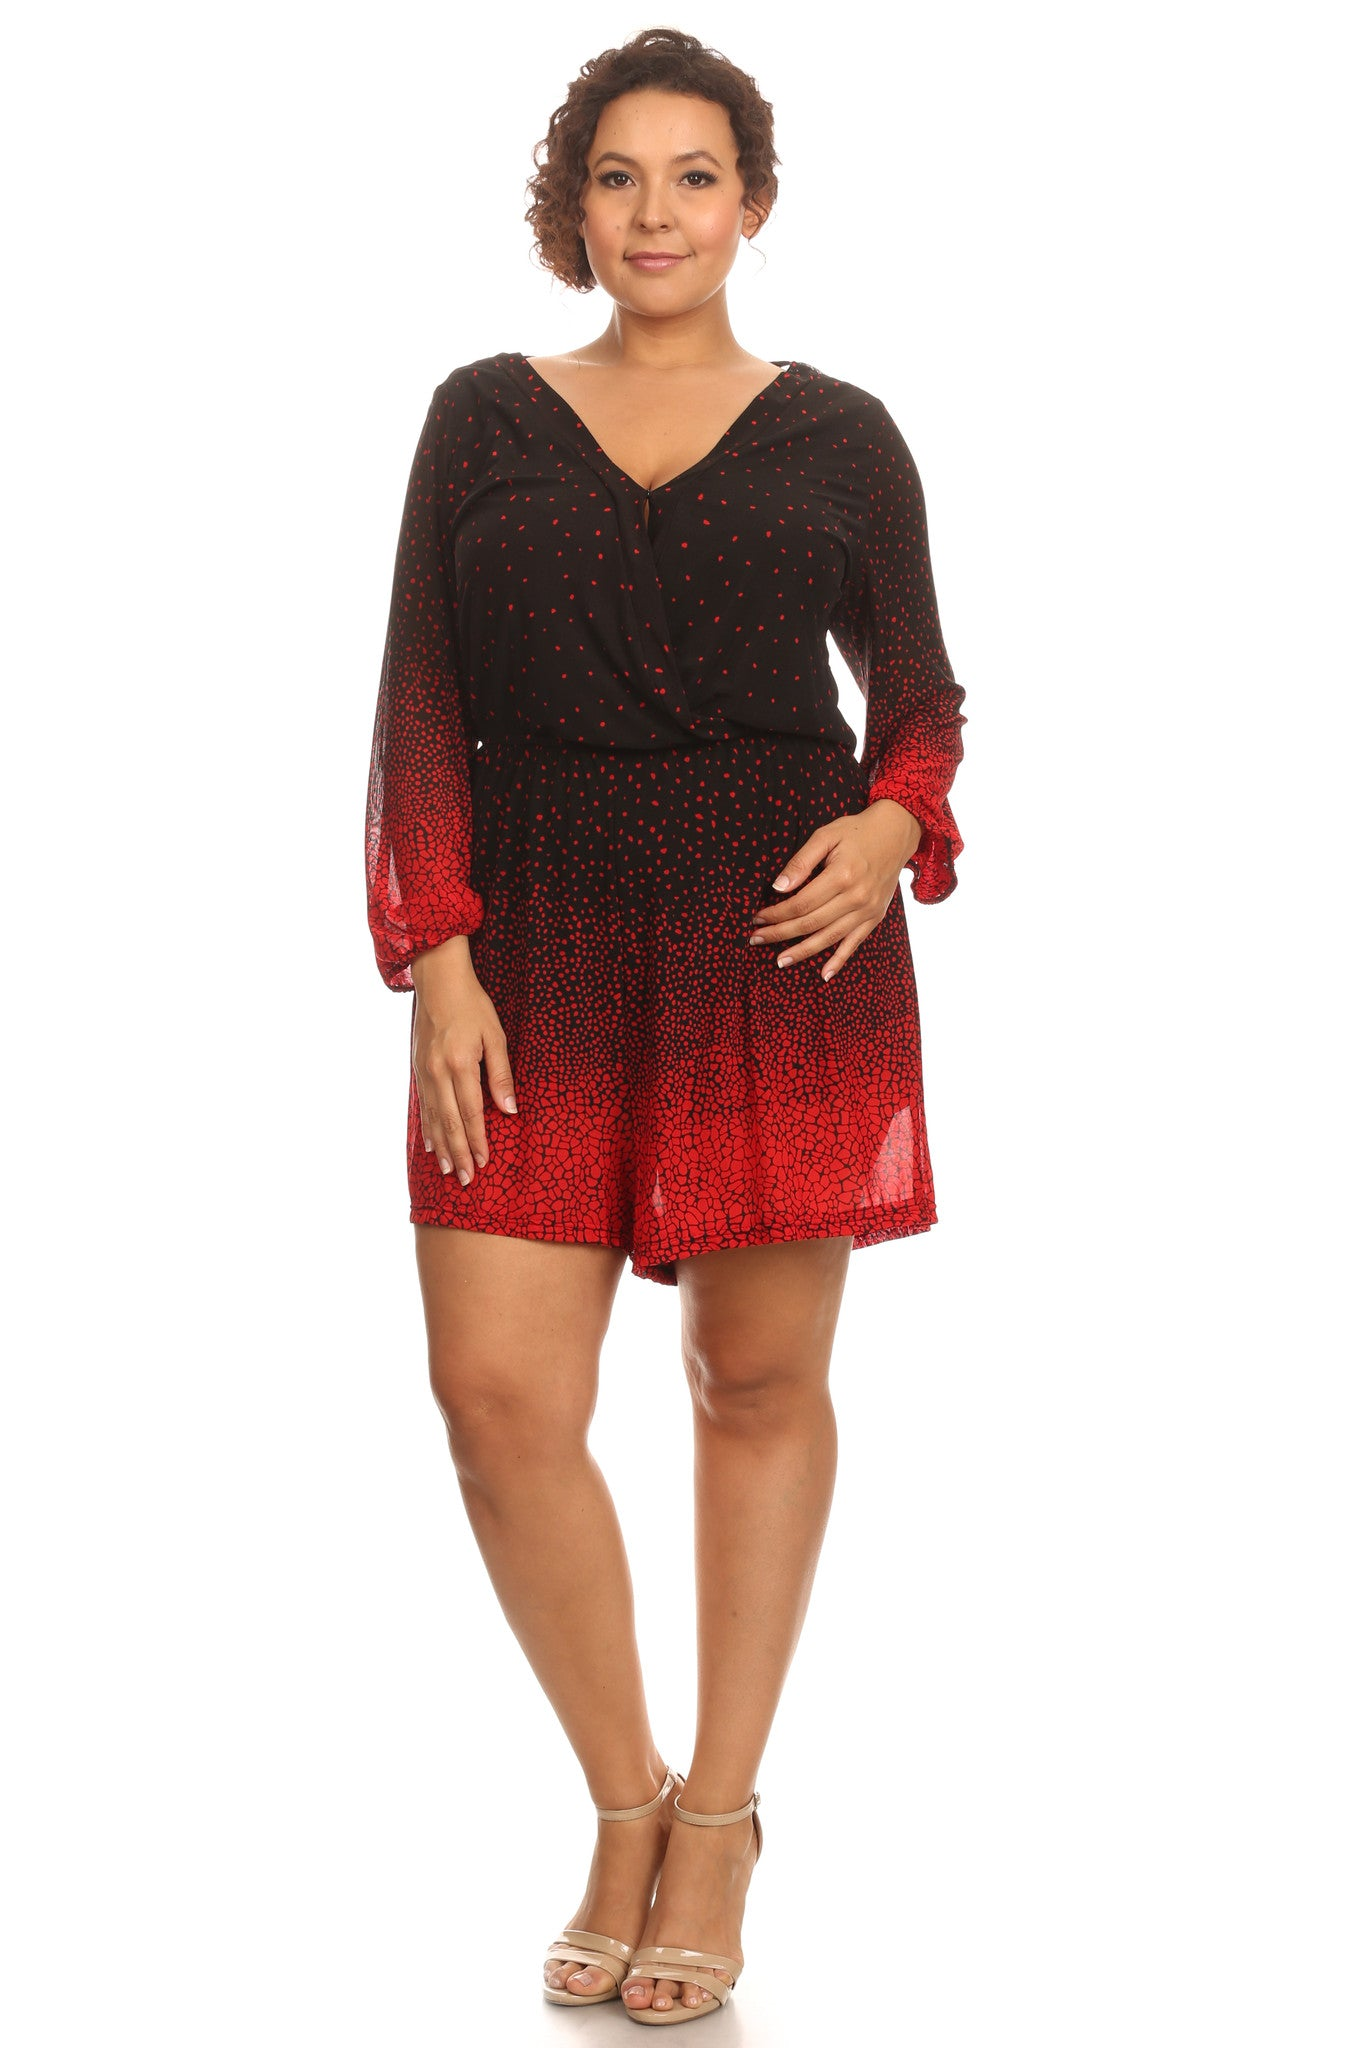 Plus Size Sexy Short Night Romper